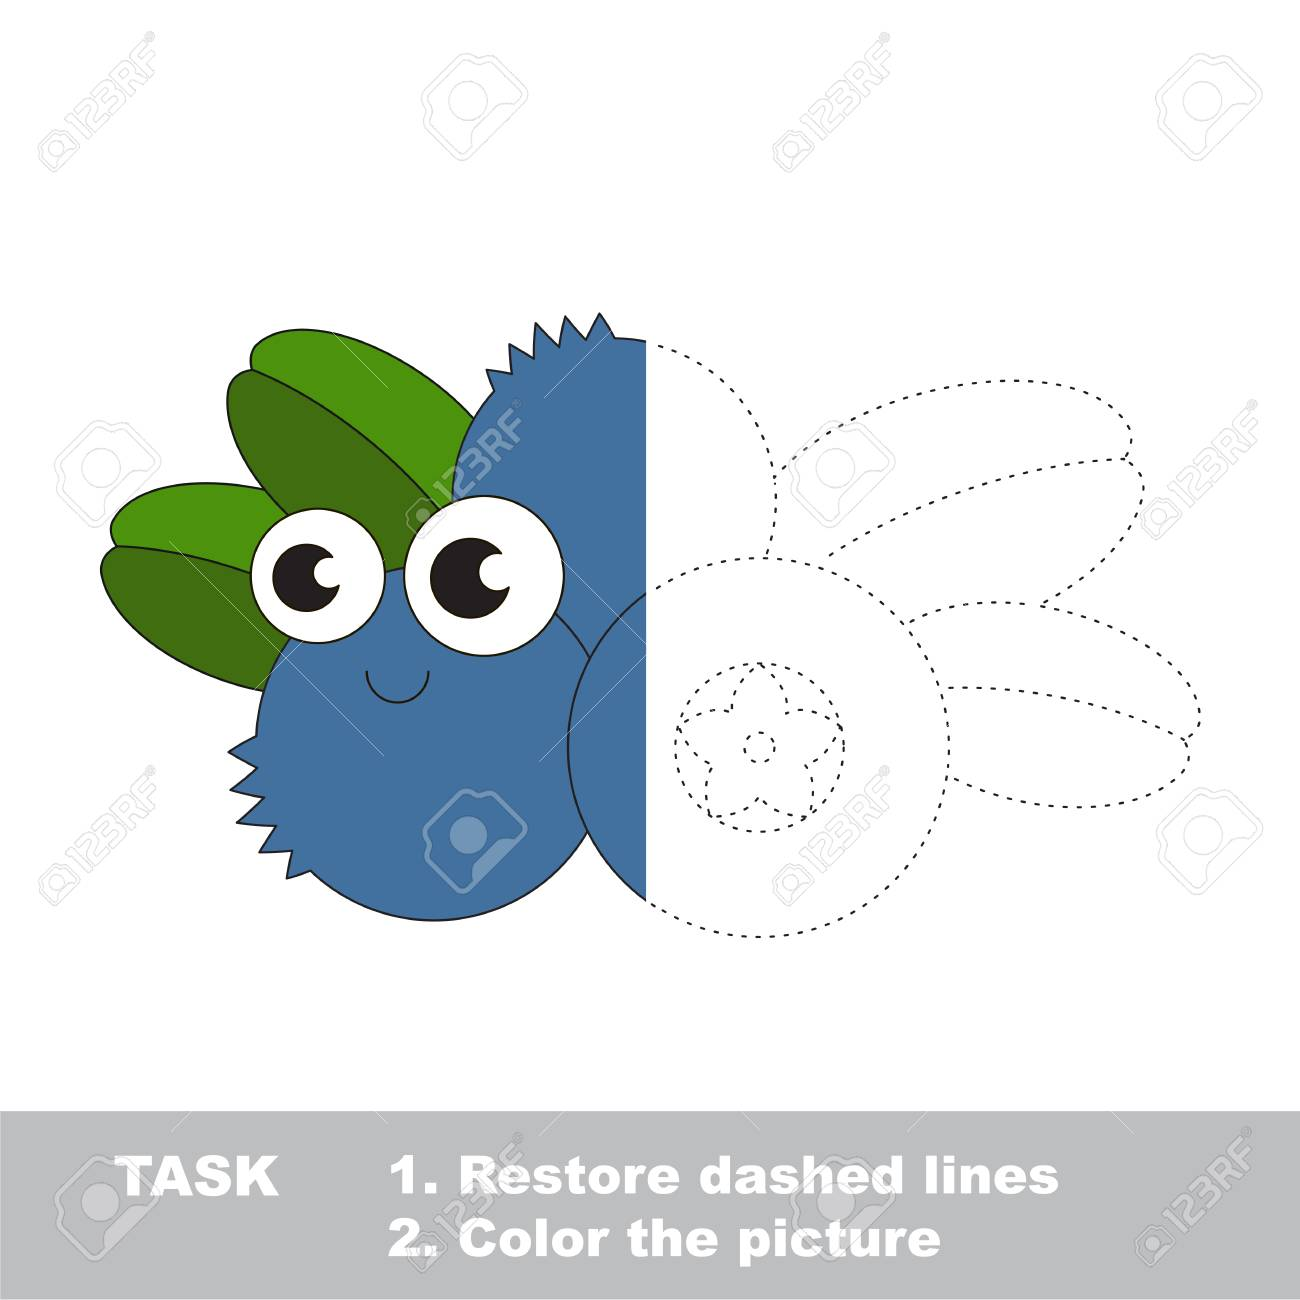 Blueberry in vector to be traced. Restore dashed line and color the picture. Visual game for children. Easy educational kid gaming. Simple level of difficulty. Worksheet for kids education. - 74023825